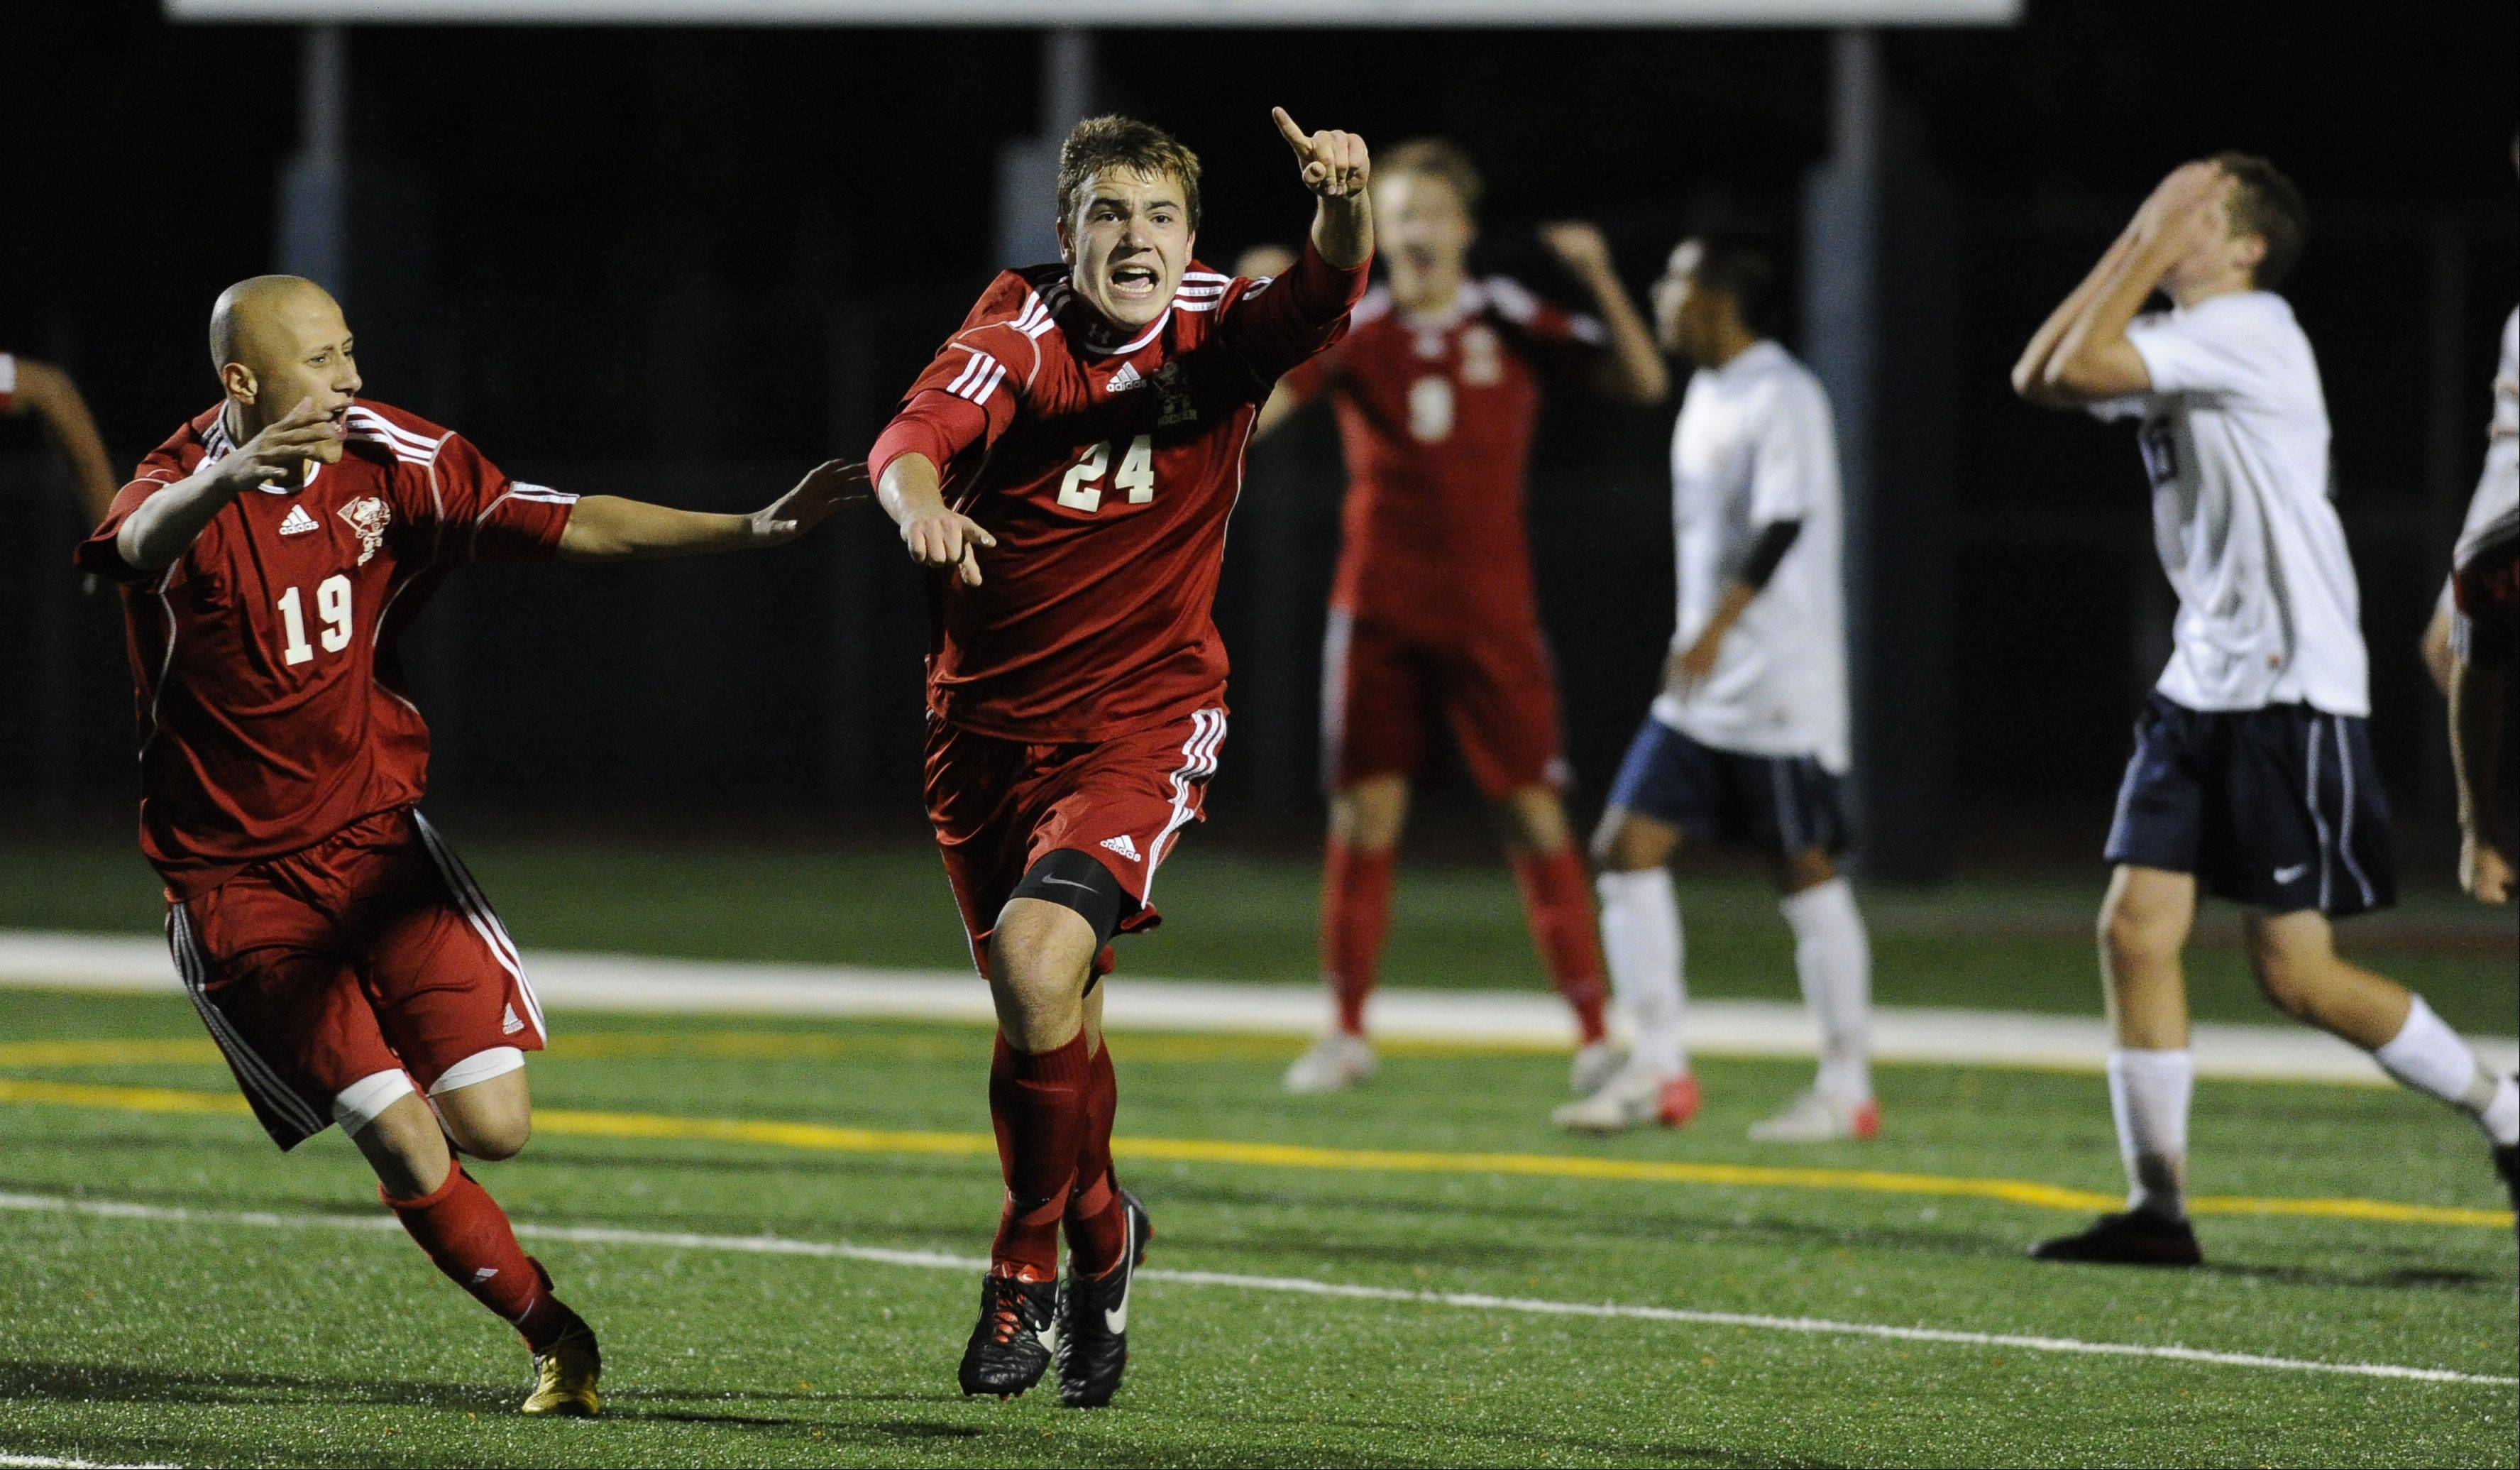 Palatine's Jeremy Velinski celebrates a goal in the Mid-Suburban League championship game at Buffalo Grove High School on Thursday.